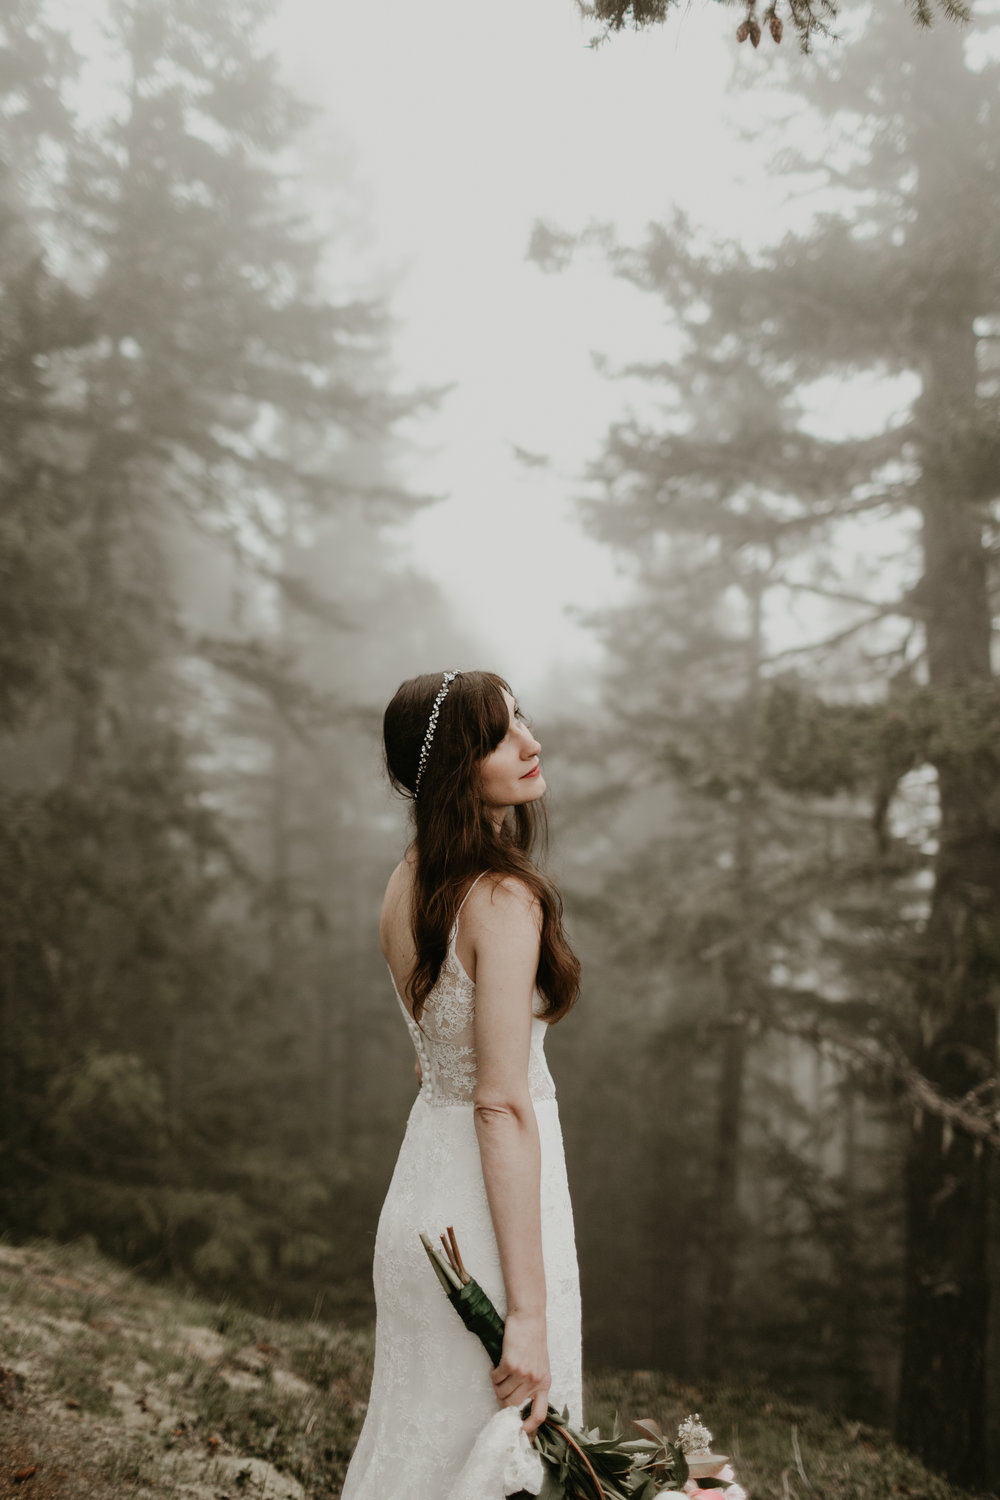 PNW-elopement-wedding-engagement-olympic national park-port angeles-hurricane ridge-lake crescent-kayla dawn photography- photographer-photography-kayladawnphoto-144.jpg